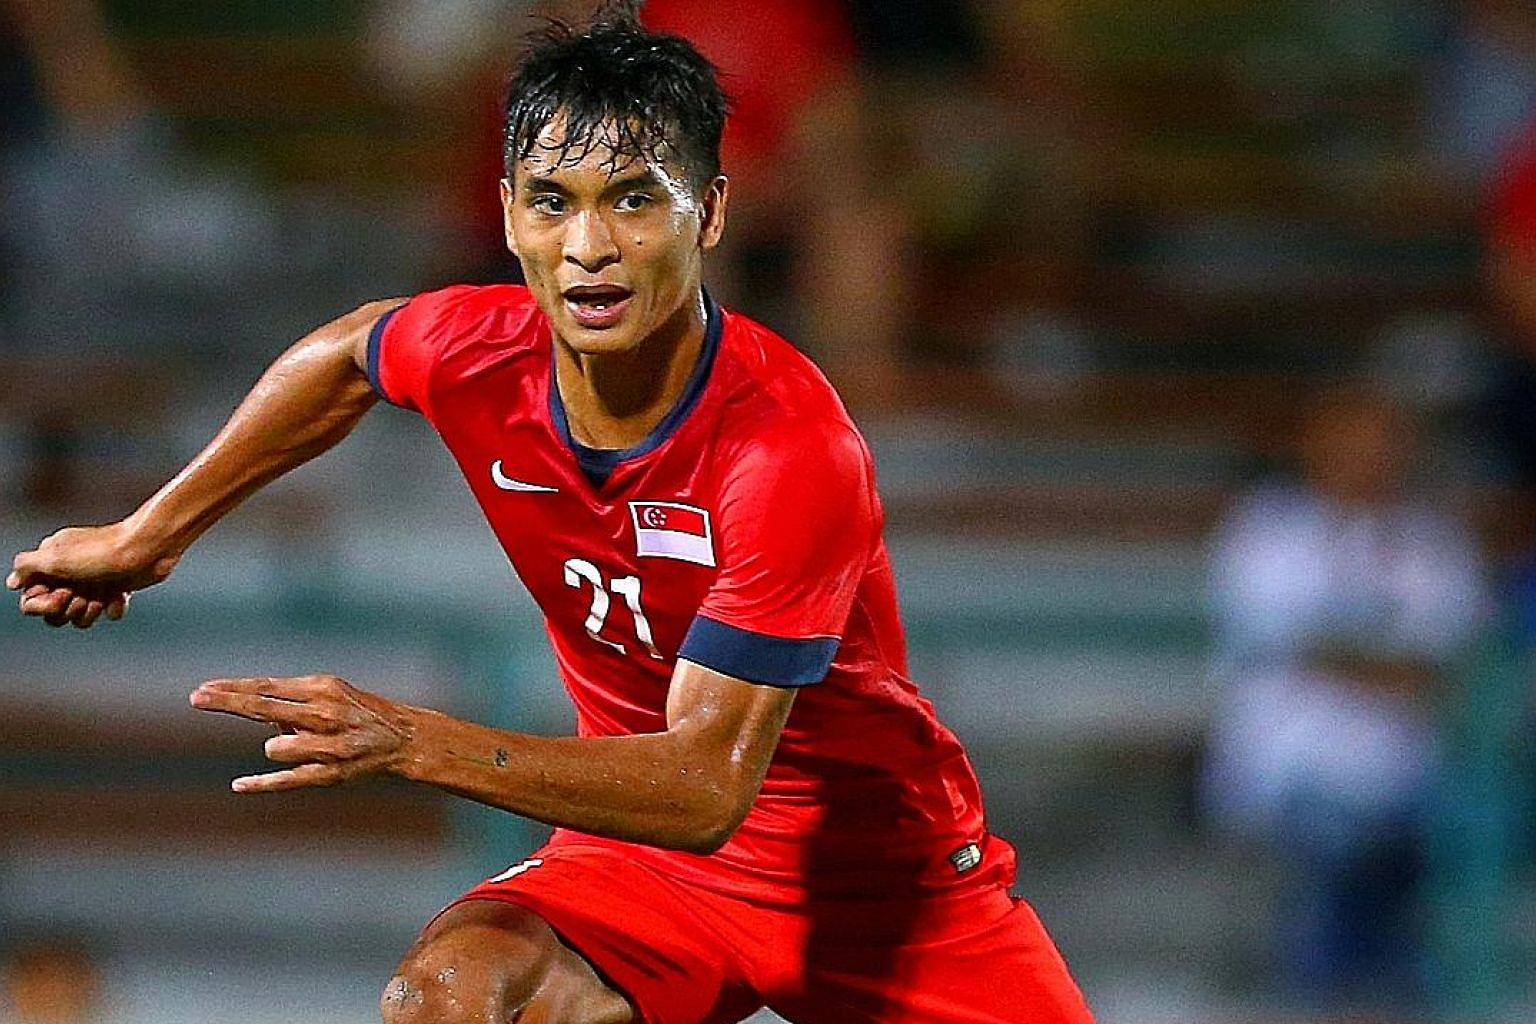 Safuwan Baharudin will be the only Singaporean on the books of an MSL side. His versatility at the back, in midfield and up front will come in handy at Pahang.